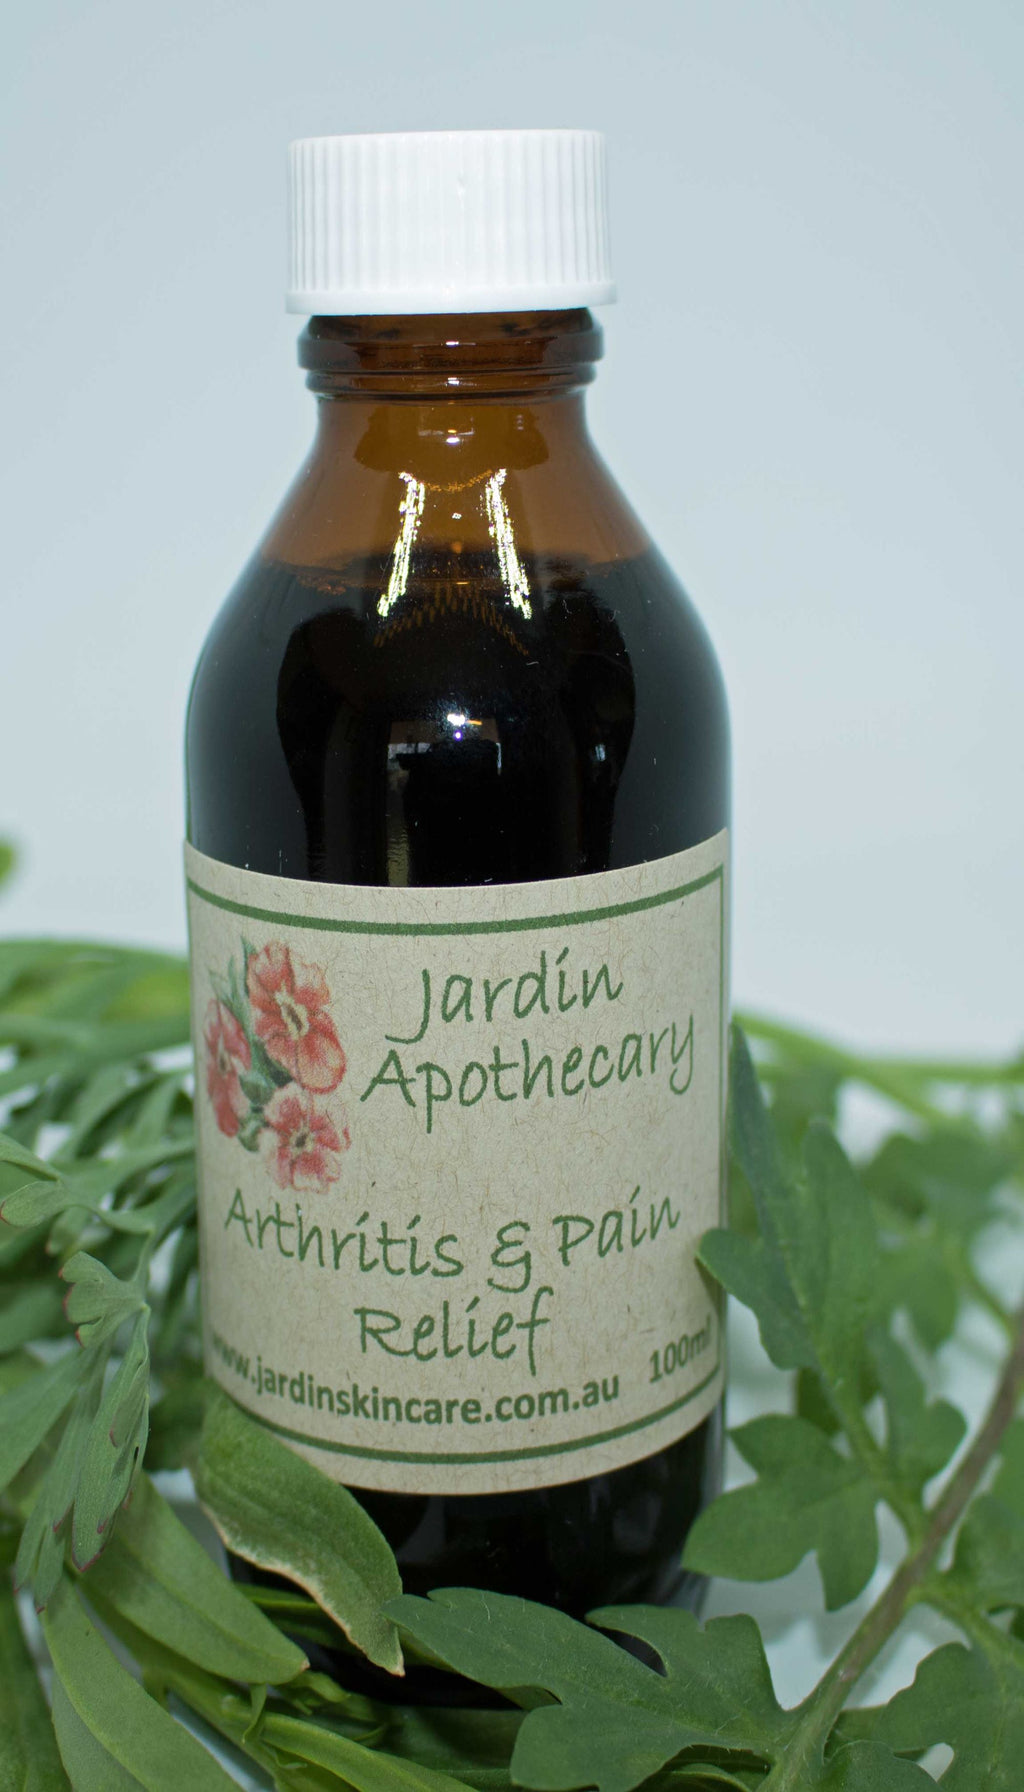 ARTHRITIS & PAIN RELIEF -  100ml